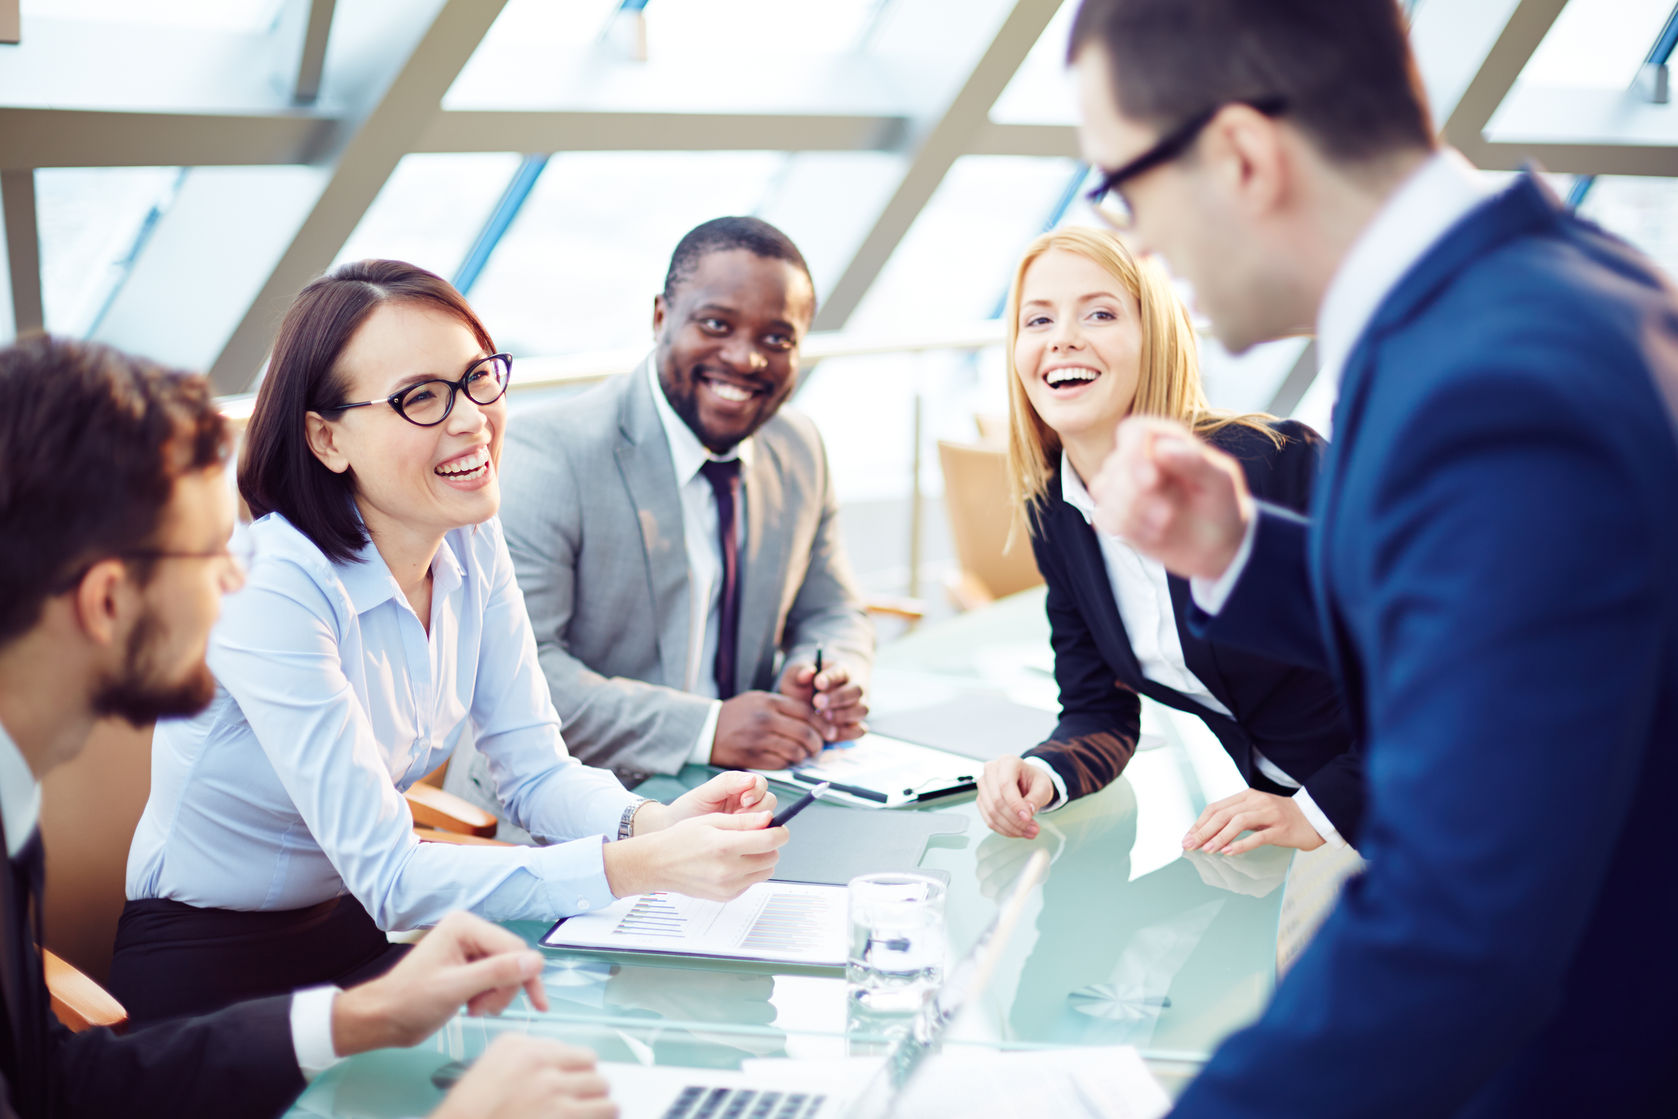 37750752 - business people laughing together at meeting